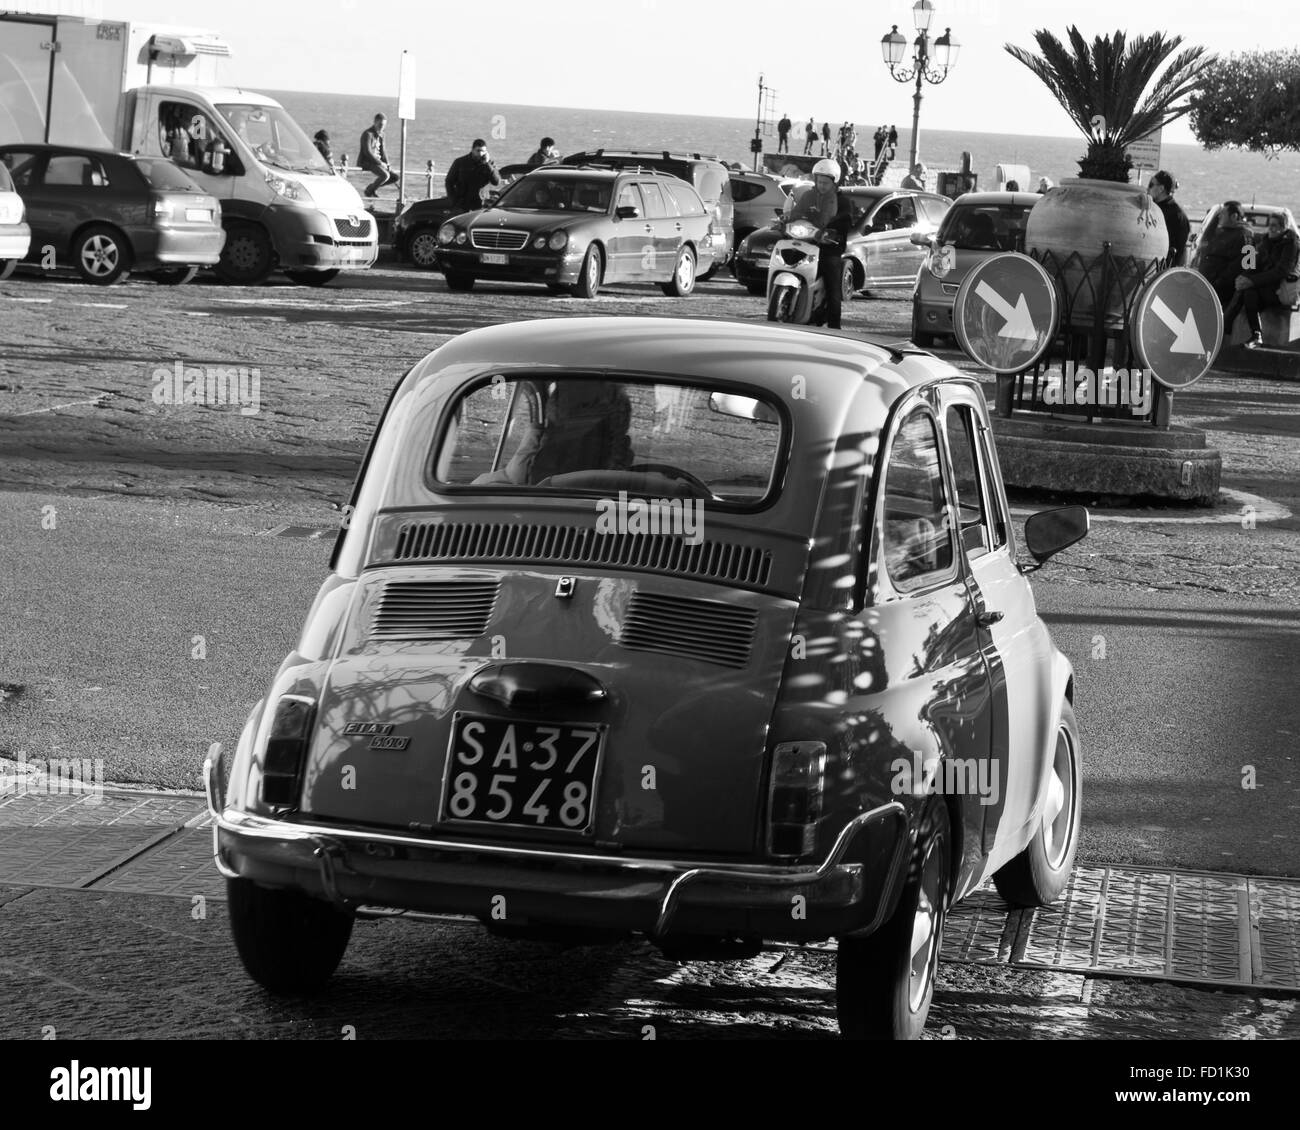 Vintage Fiat 500 Stock Photos & Vintage Fiat 500 Stock